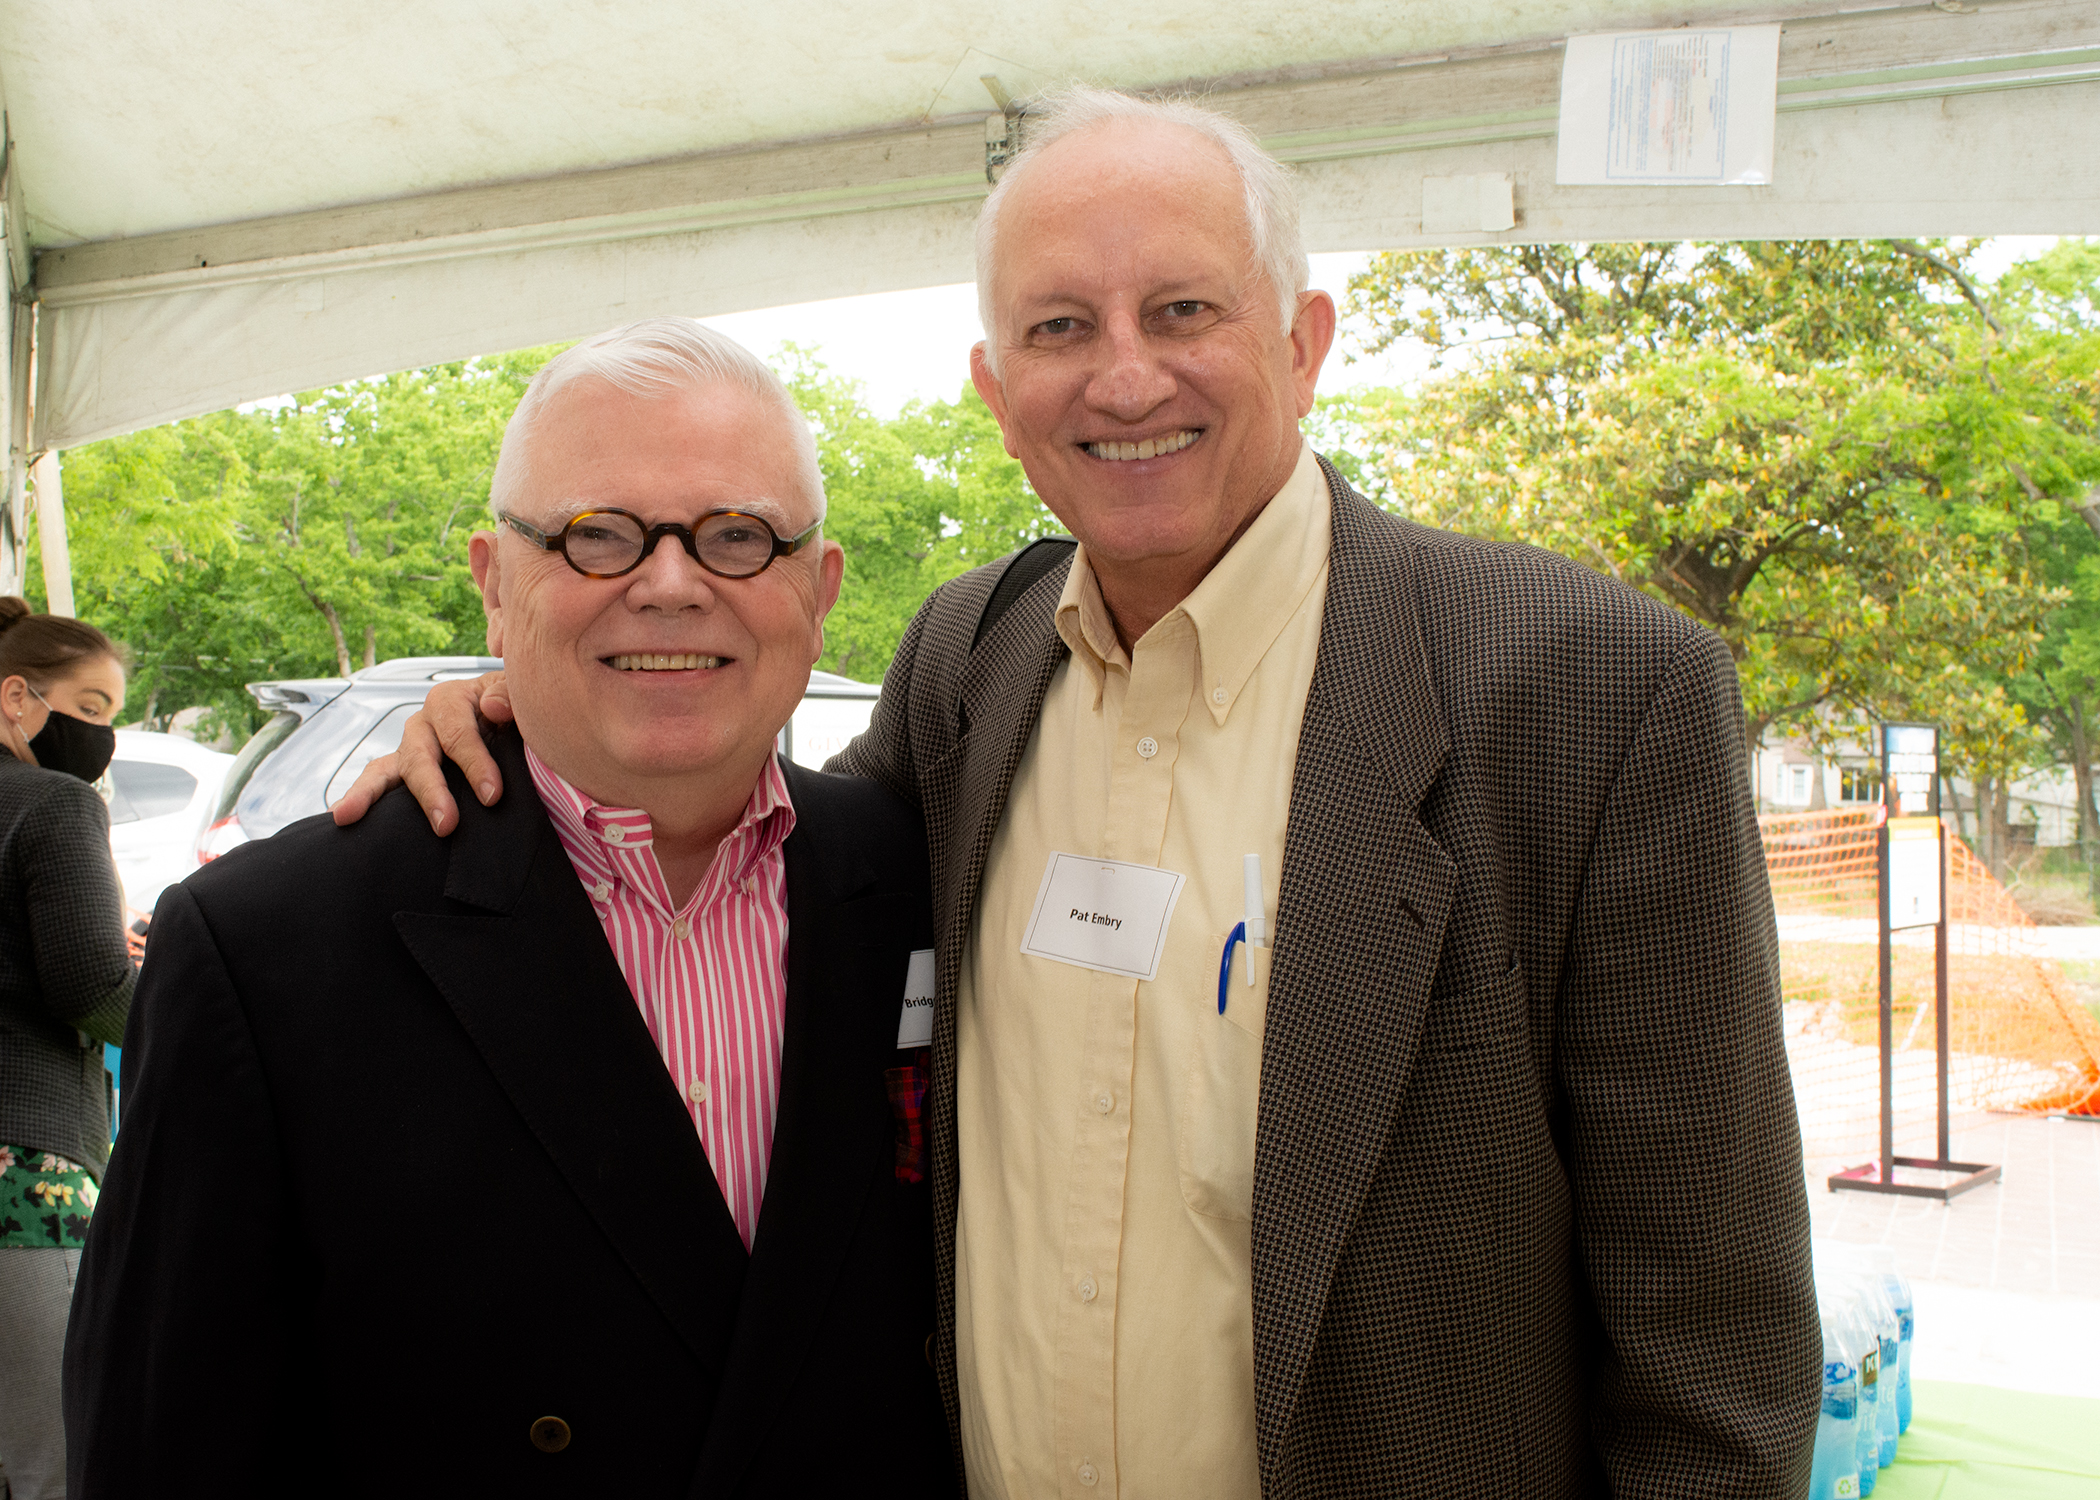 Author John Bridges with CFMT Director of Media and Community Outreach, Pat Embry